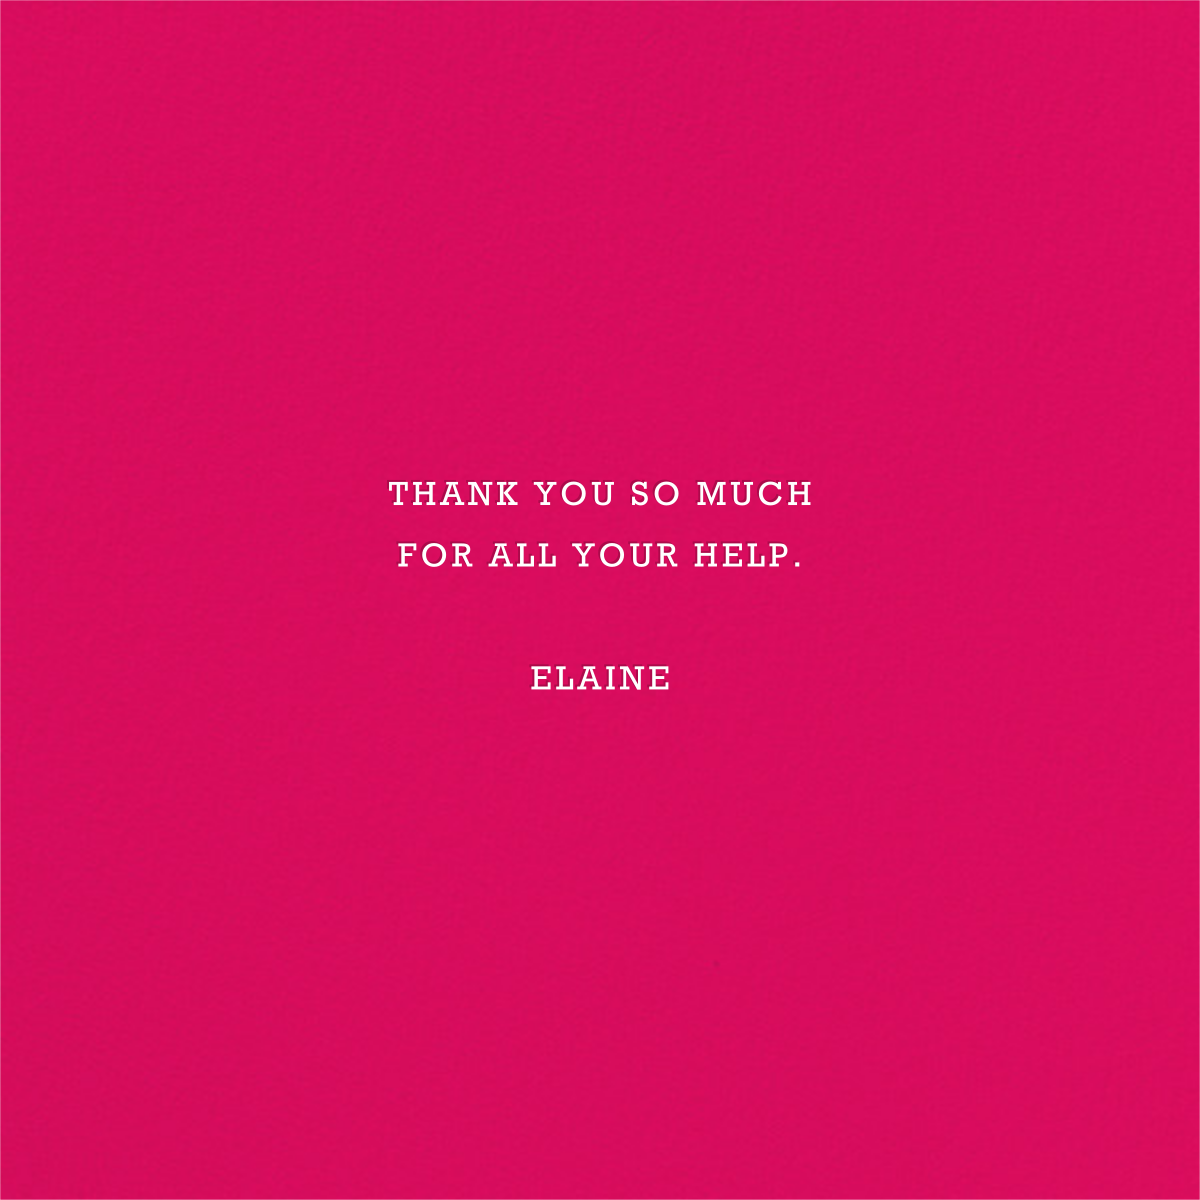 Danke - Pink - Jonathan Adler - Graduation thank you cards - card back